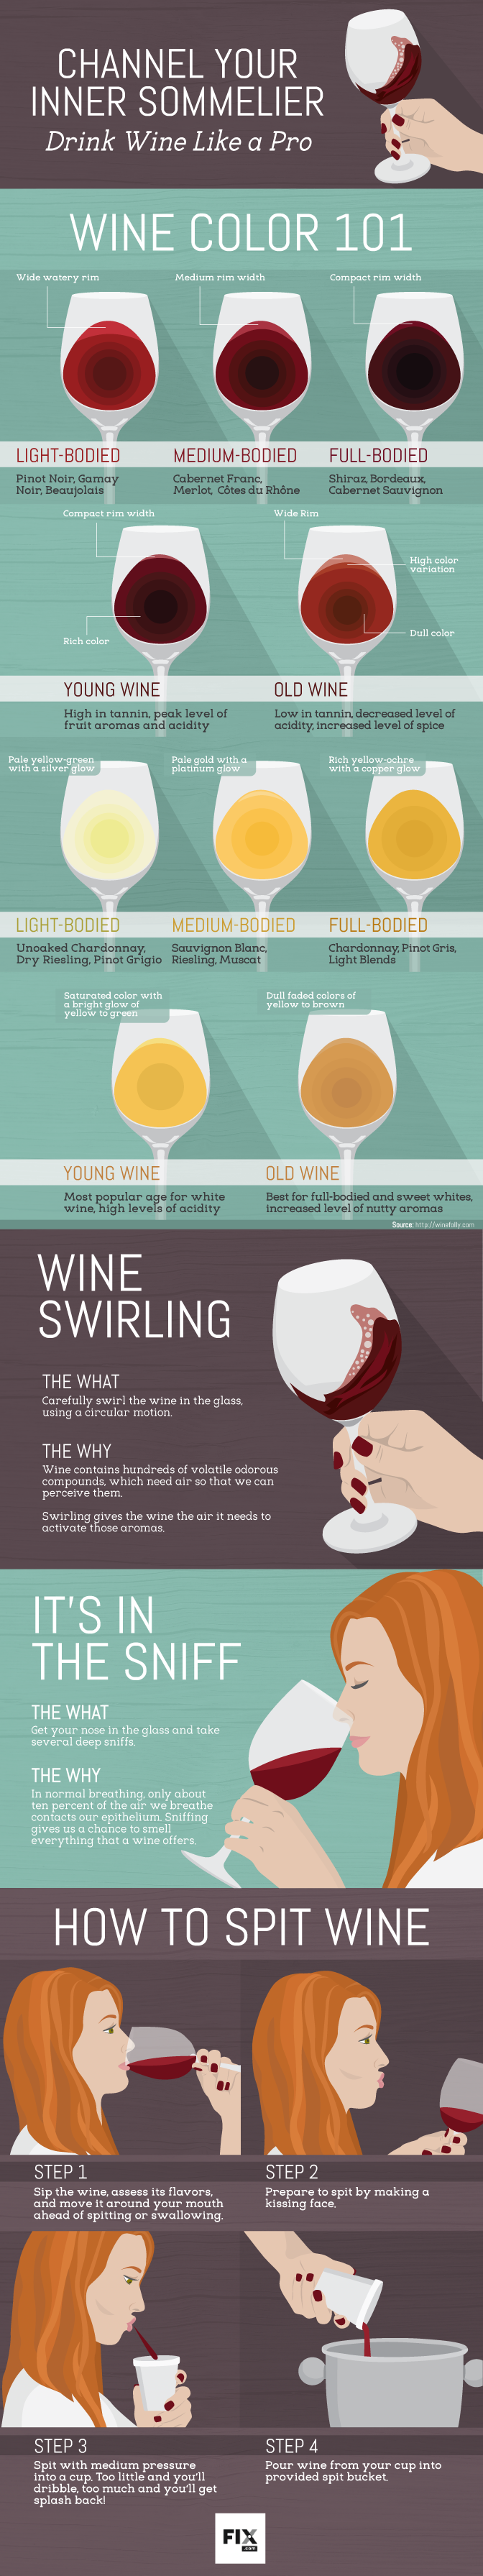 drink-wine-like-an-expert-embed-large